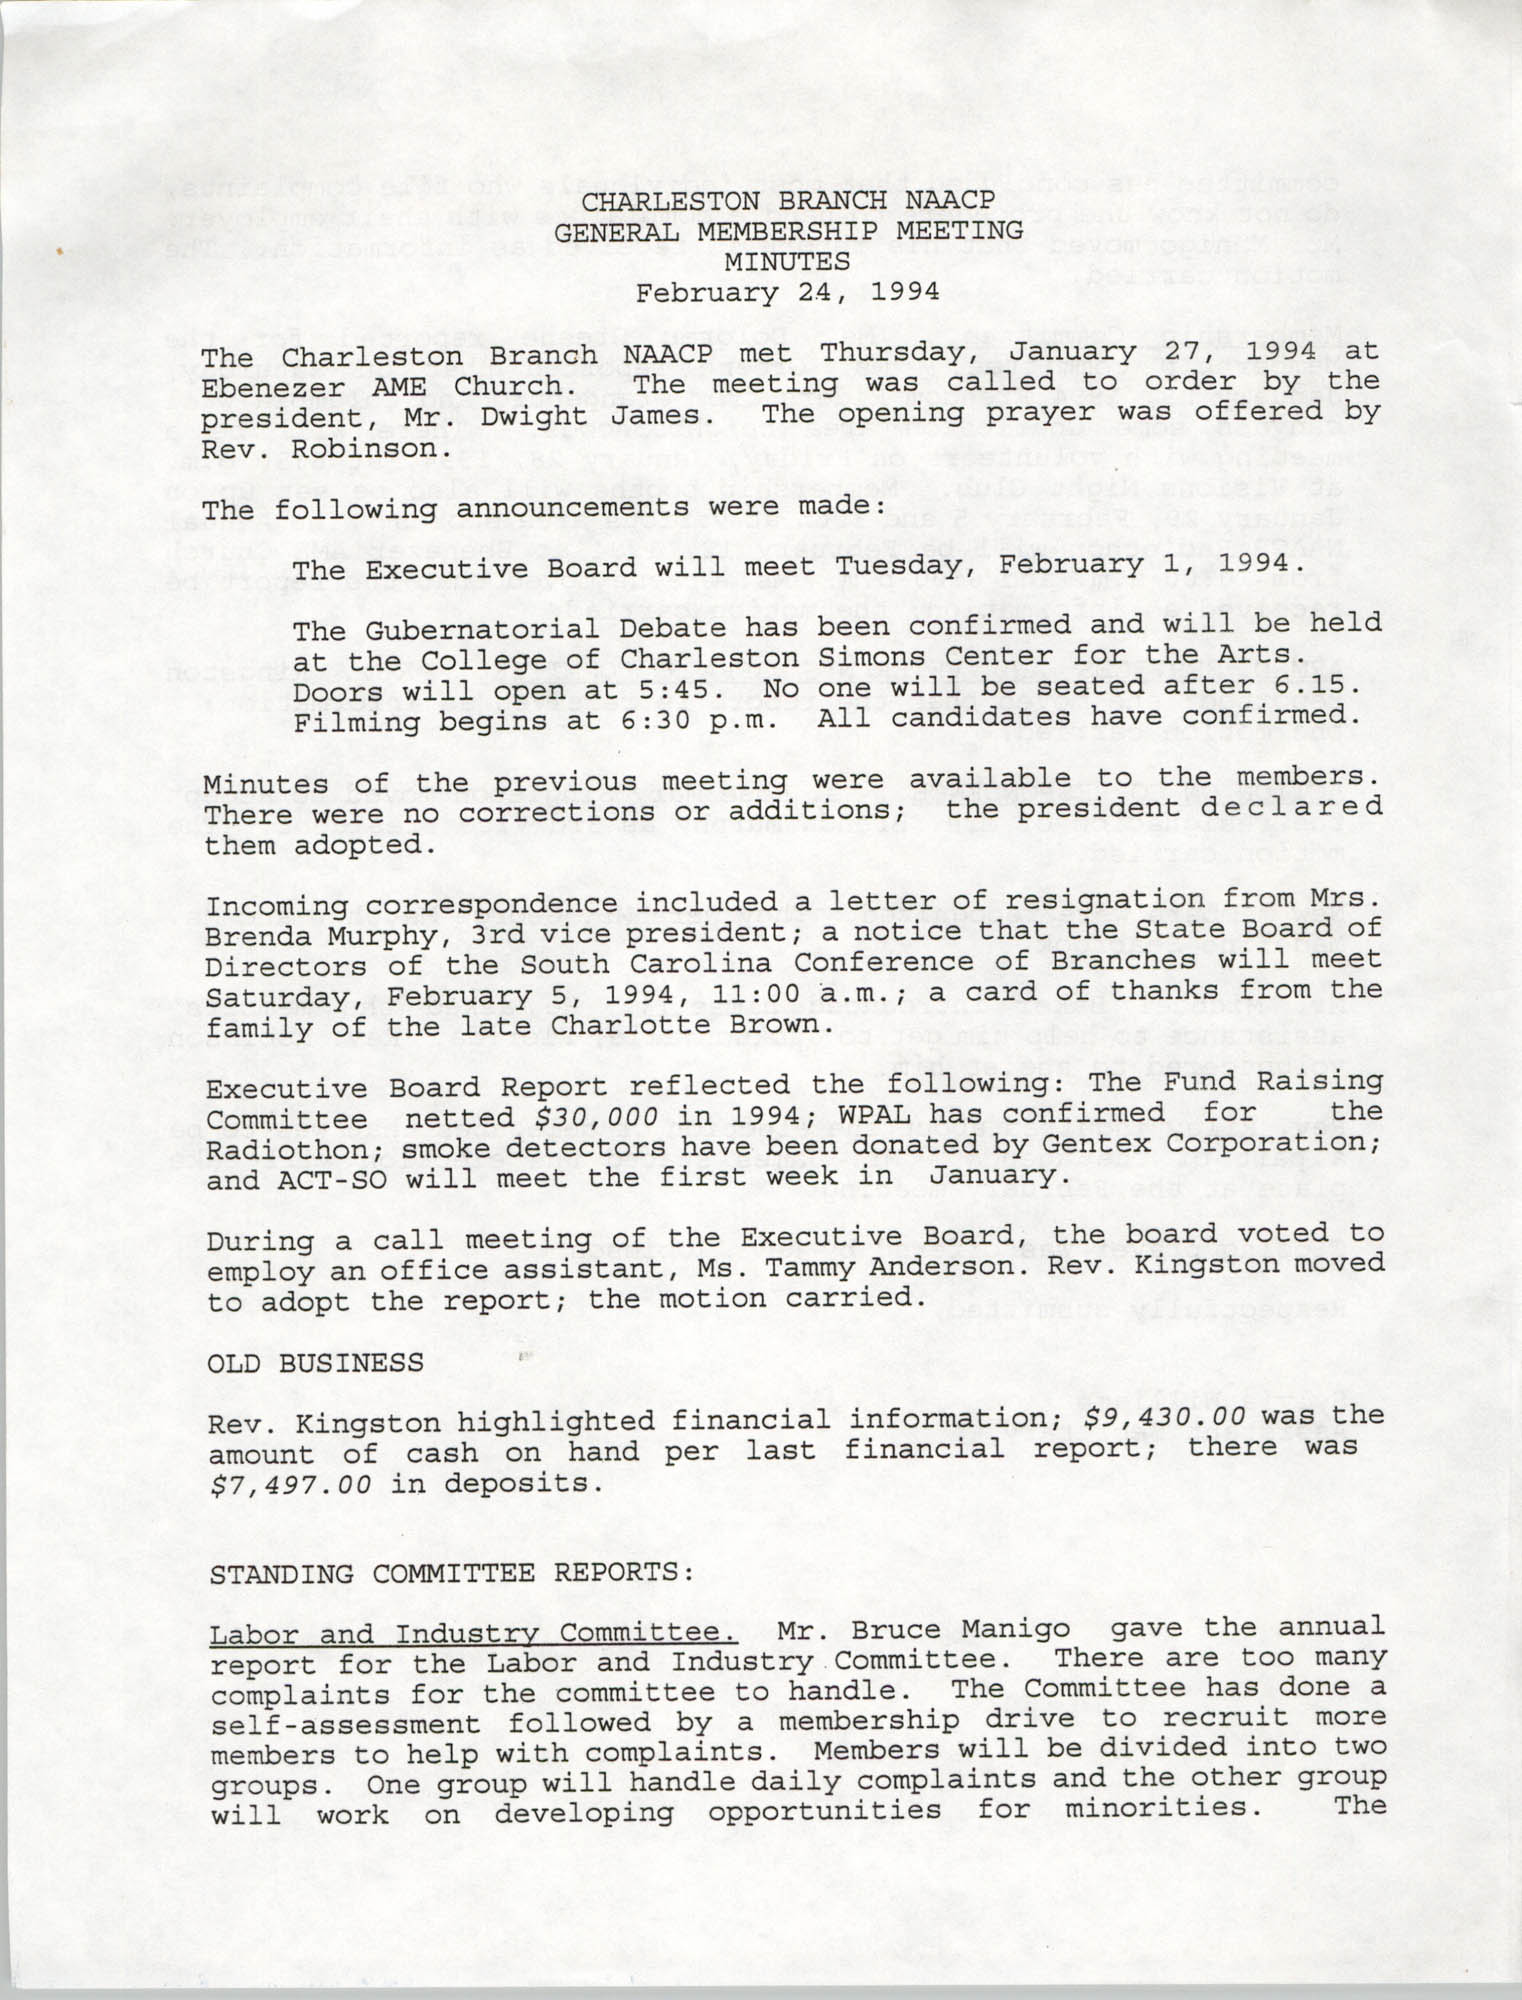 Minutes, Charleston Branch of the NAACP General Membership Meeting, February 24, 1994